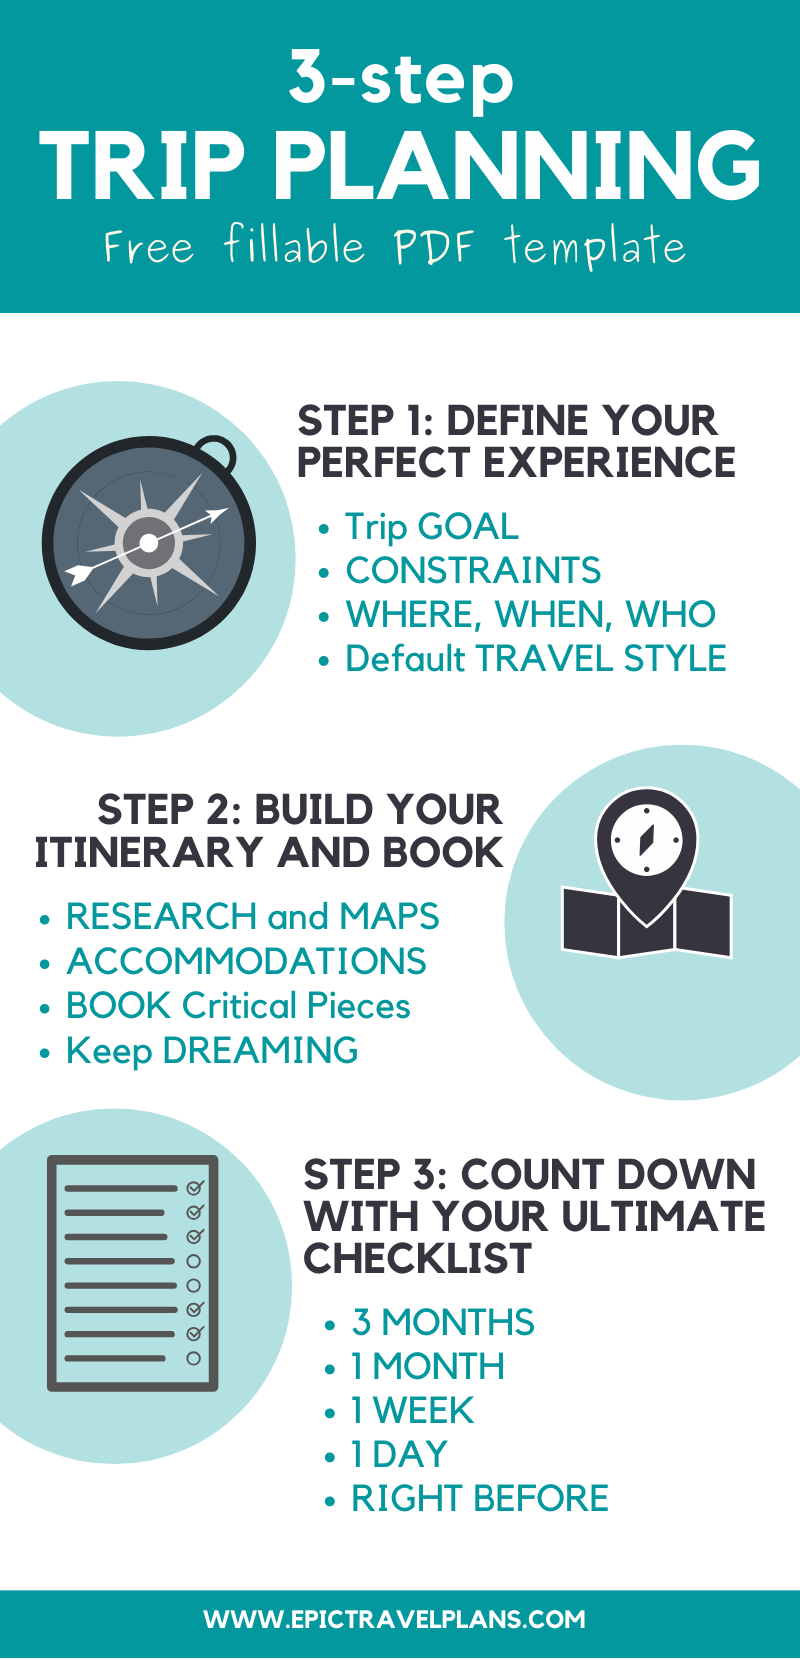 Trip planning 3-step process: infographic